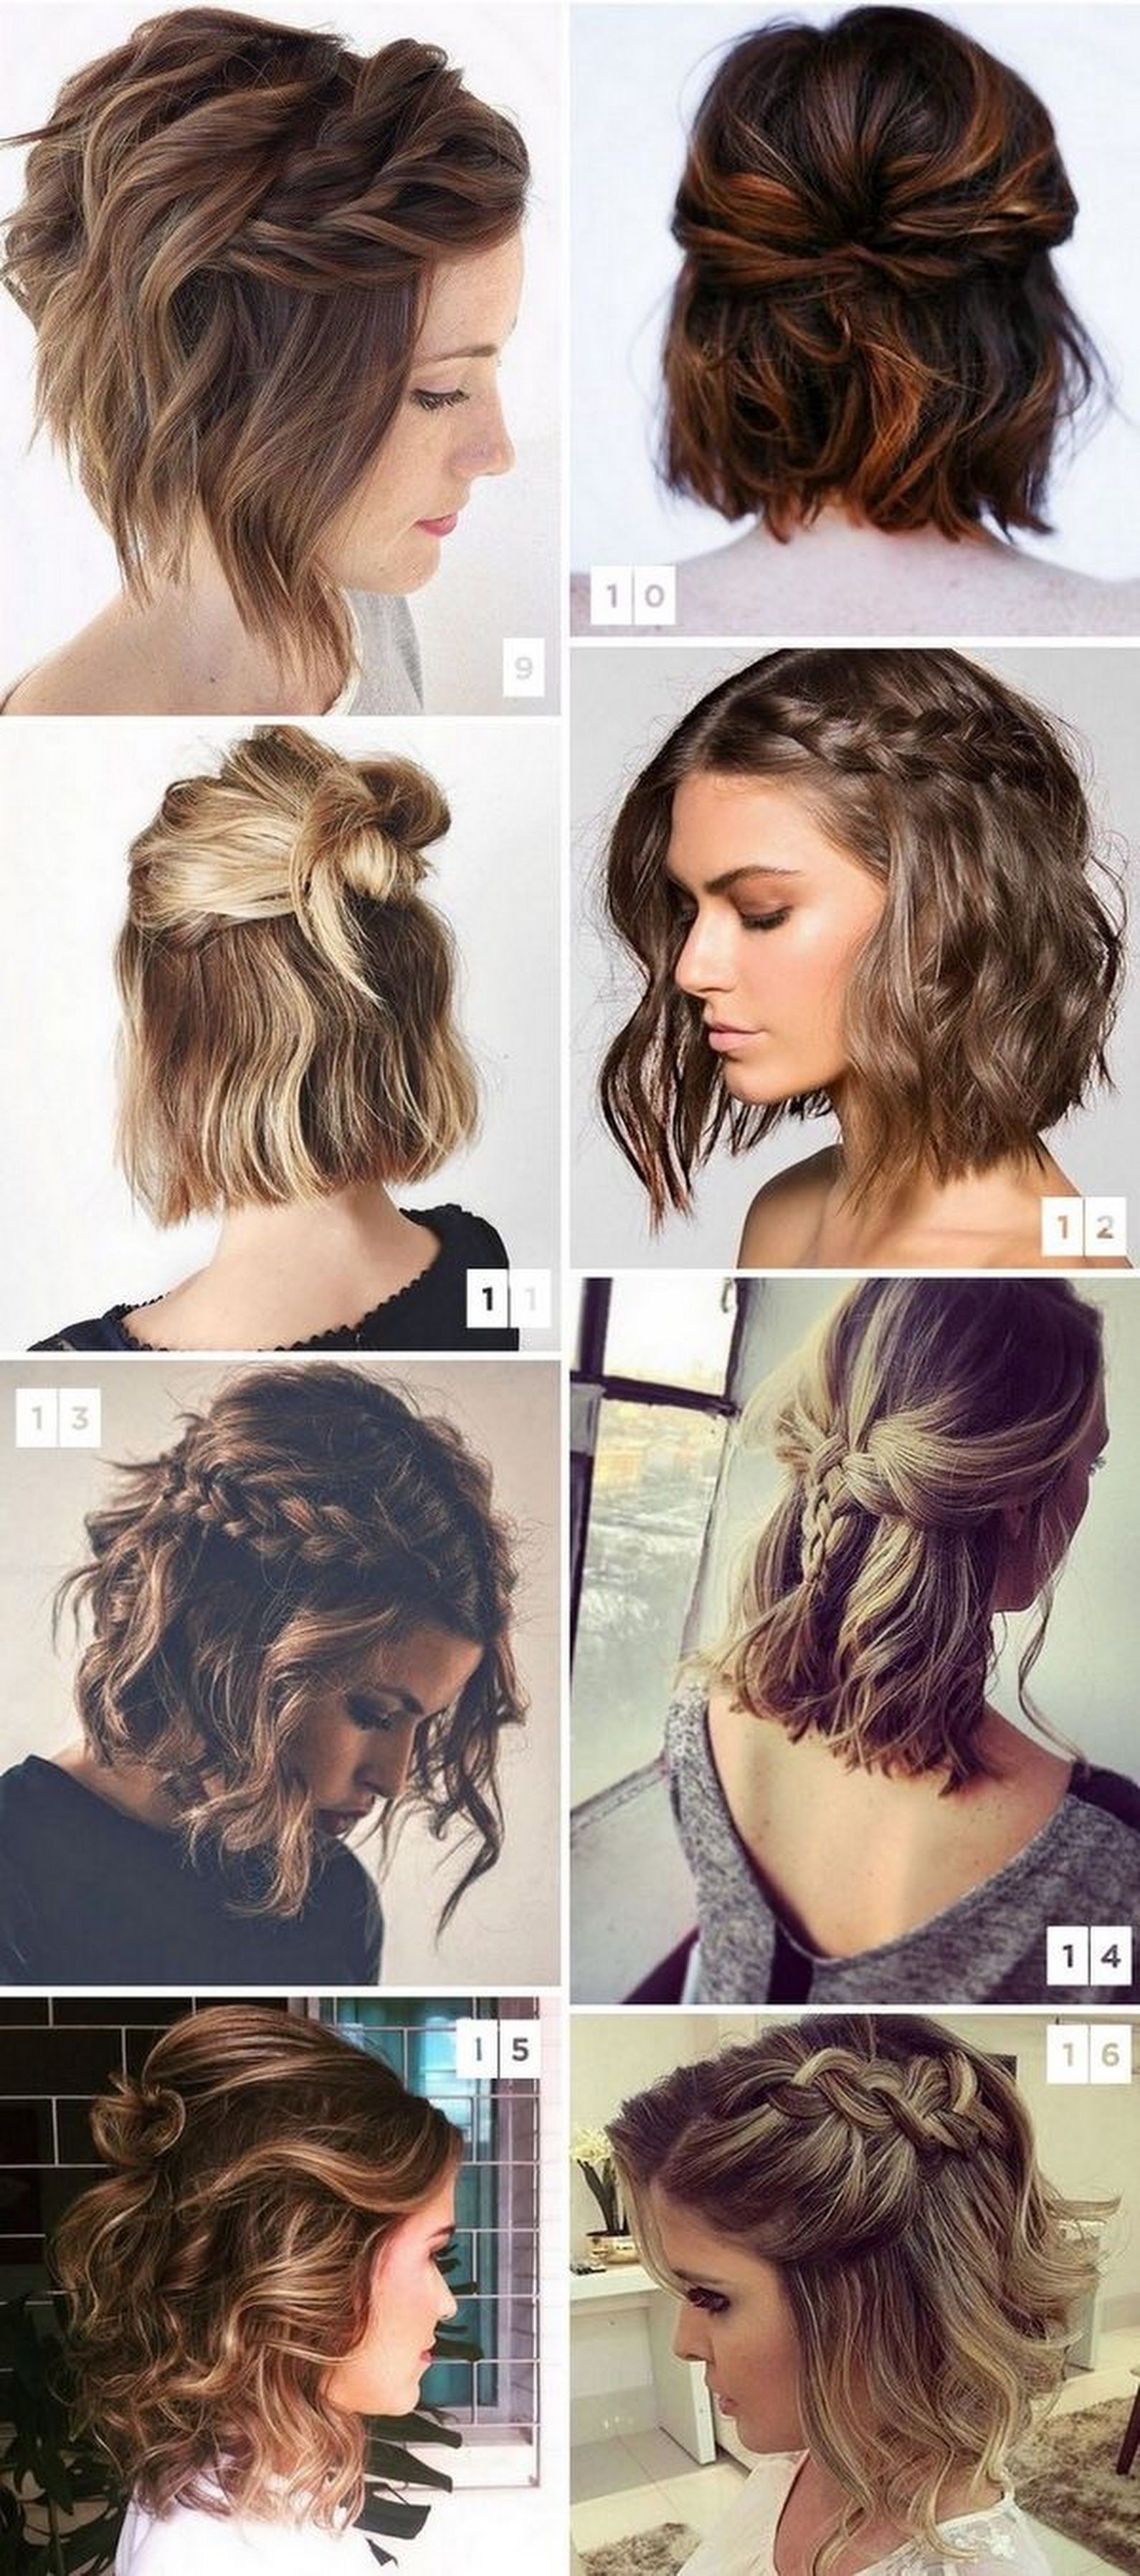 Pin by victoria stott on hair pinterest hair style makeup and